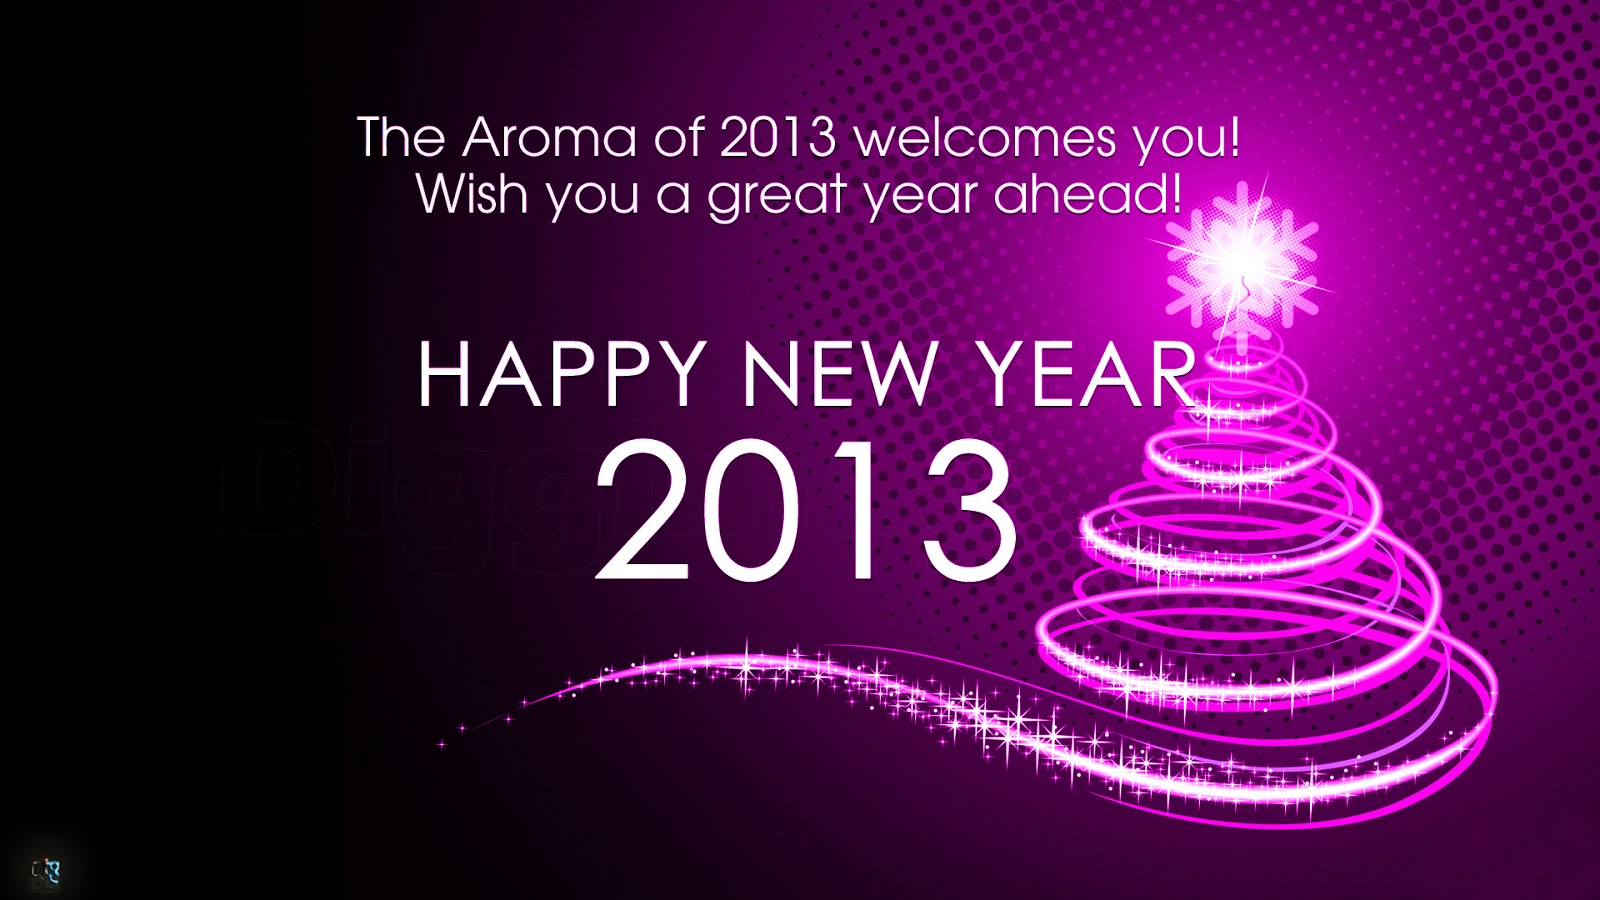 Happy New Year 2013 Tamil Wishes Sms Greetings And Wallpapers. 1600 x 900.Happy Nice New Year Messages Sms Jokes